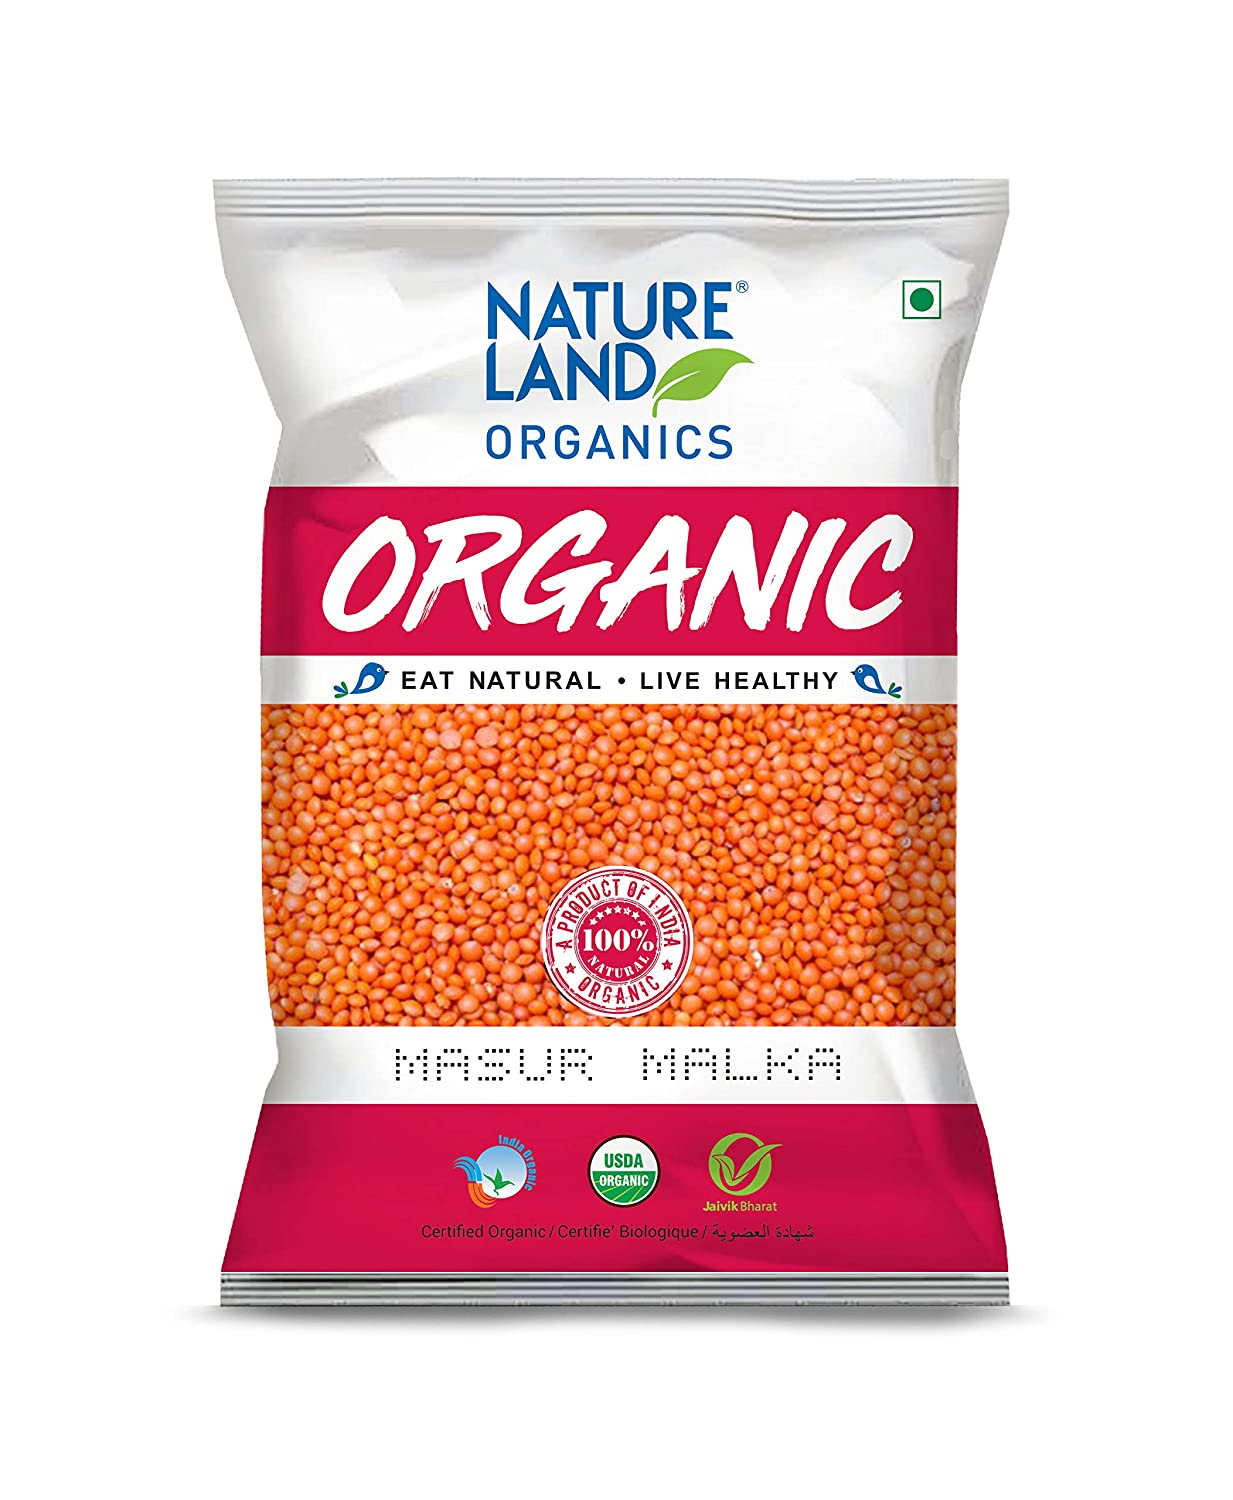 Nature Land Organics Malka Masoor 500 gm